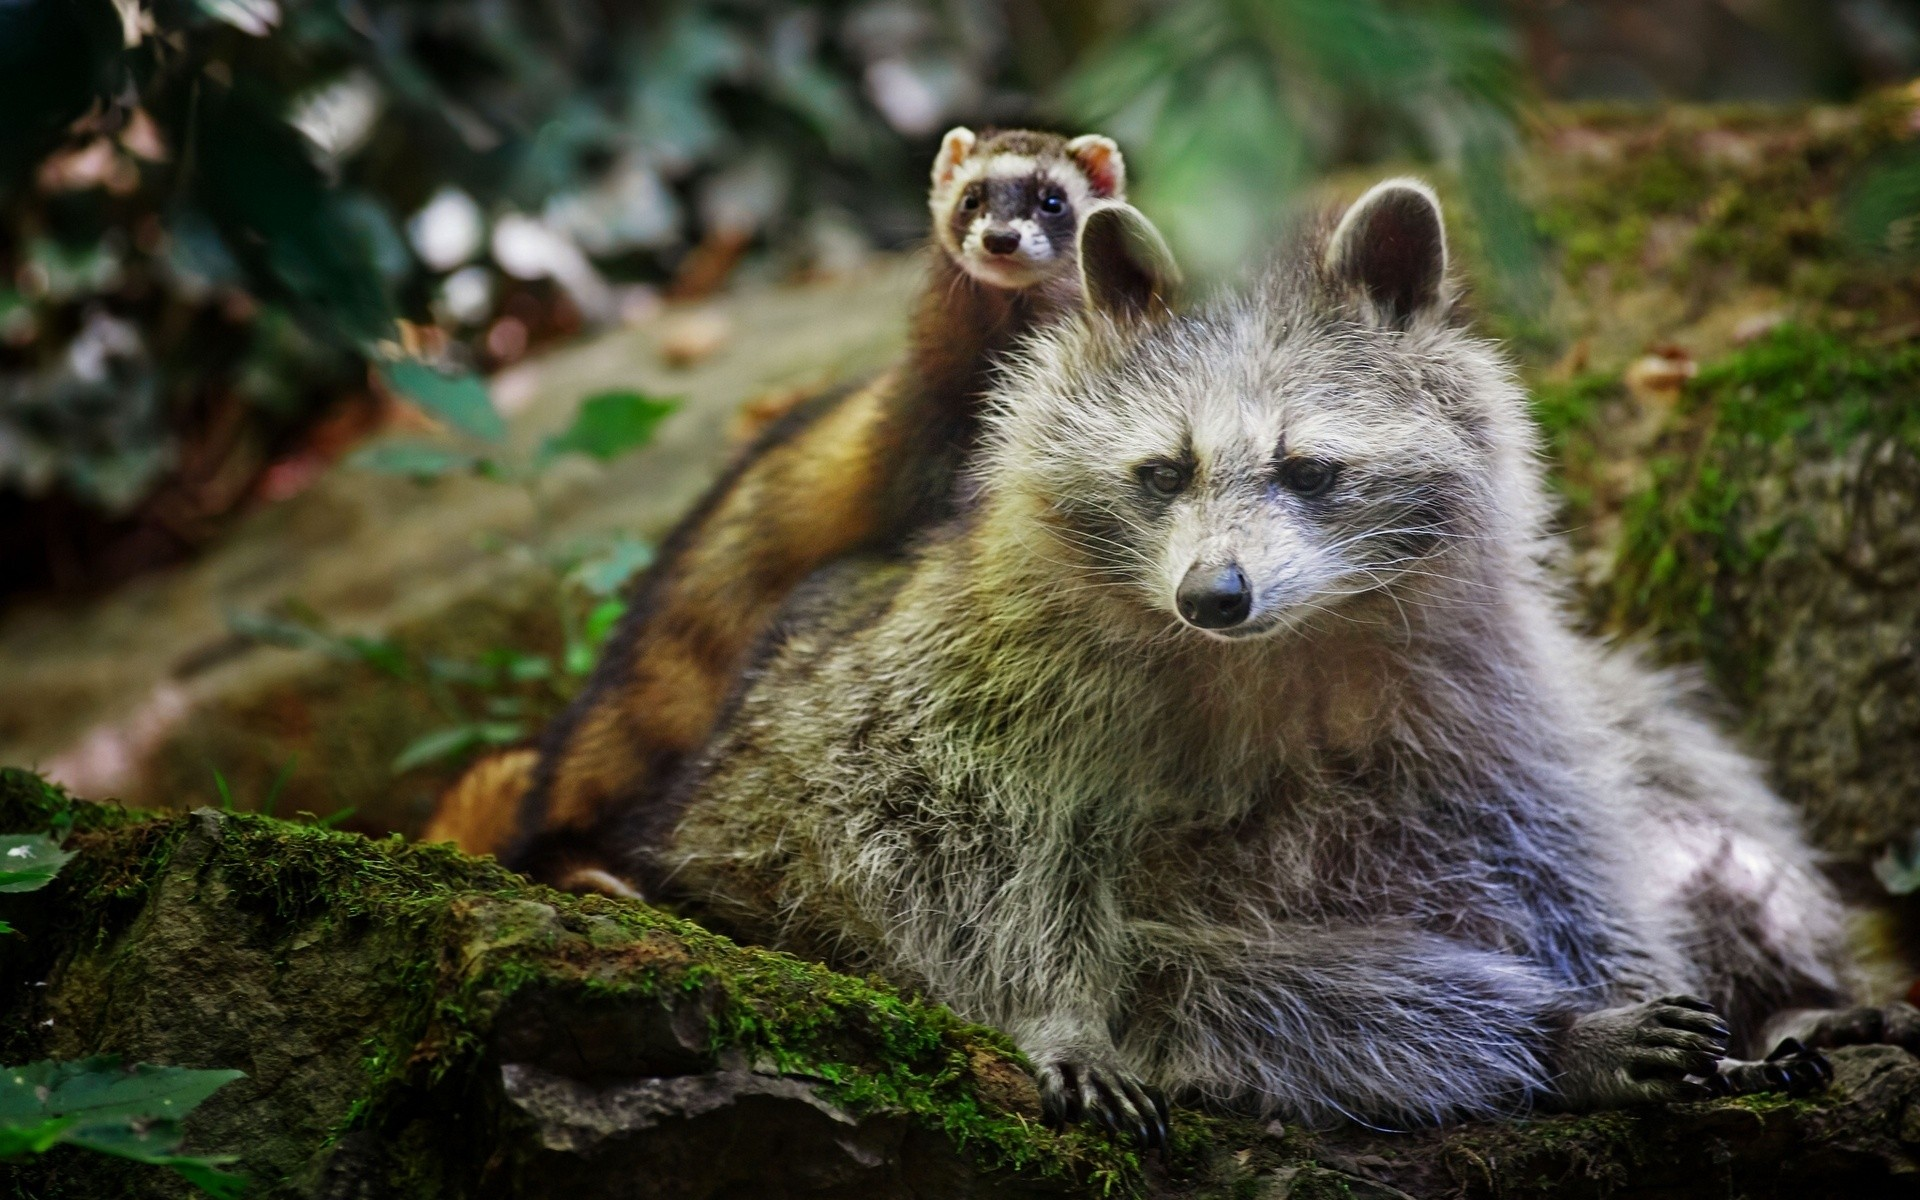 Animals, Weasels Samsung, Moss, Free, Forest, Rocks, Nature